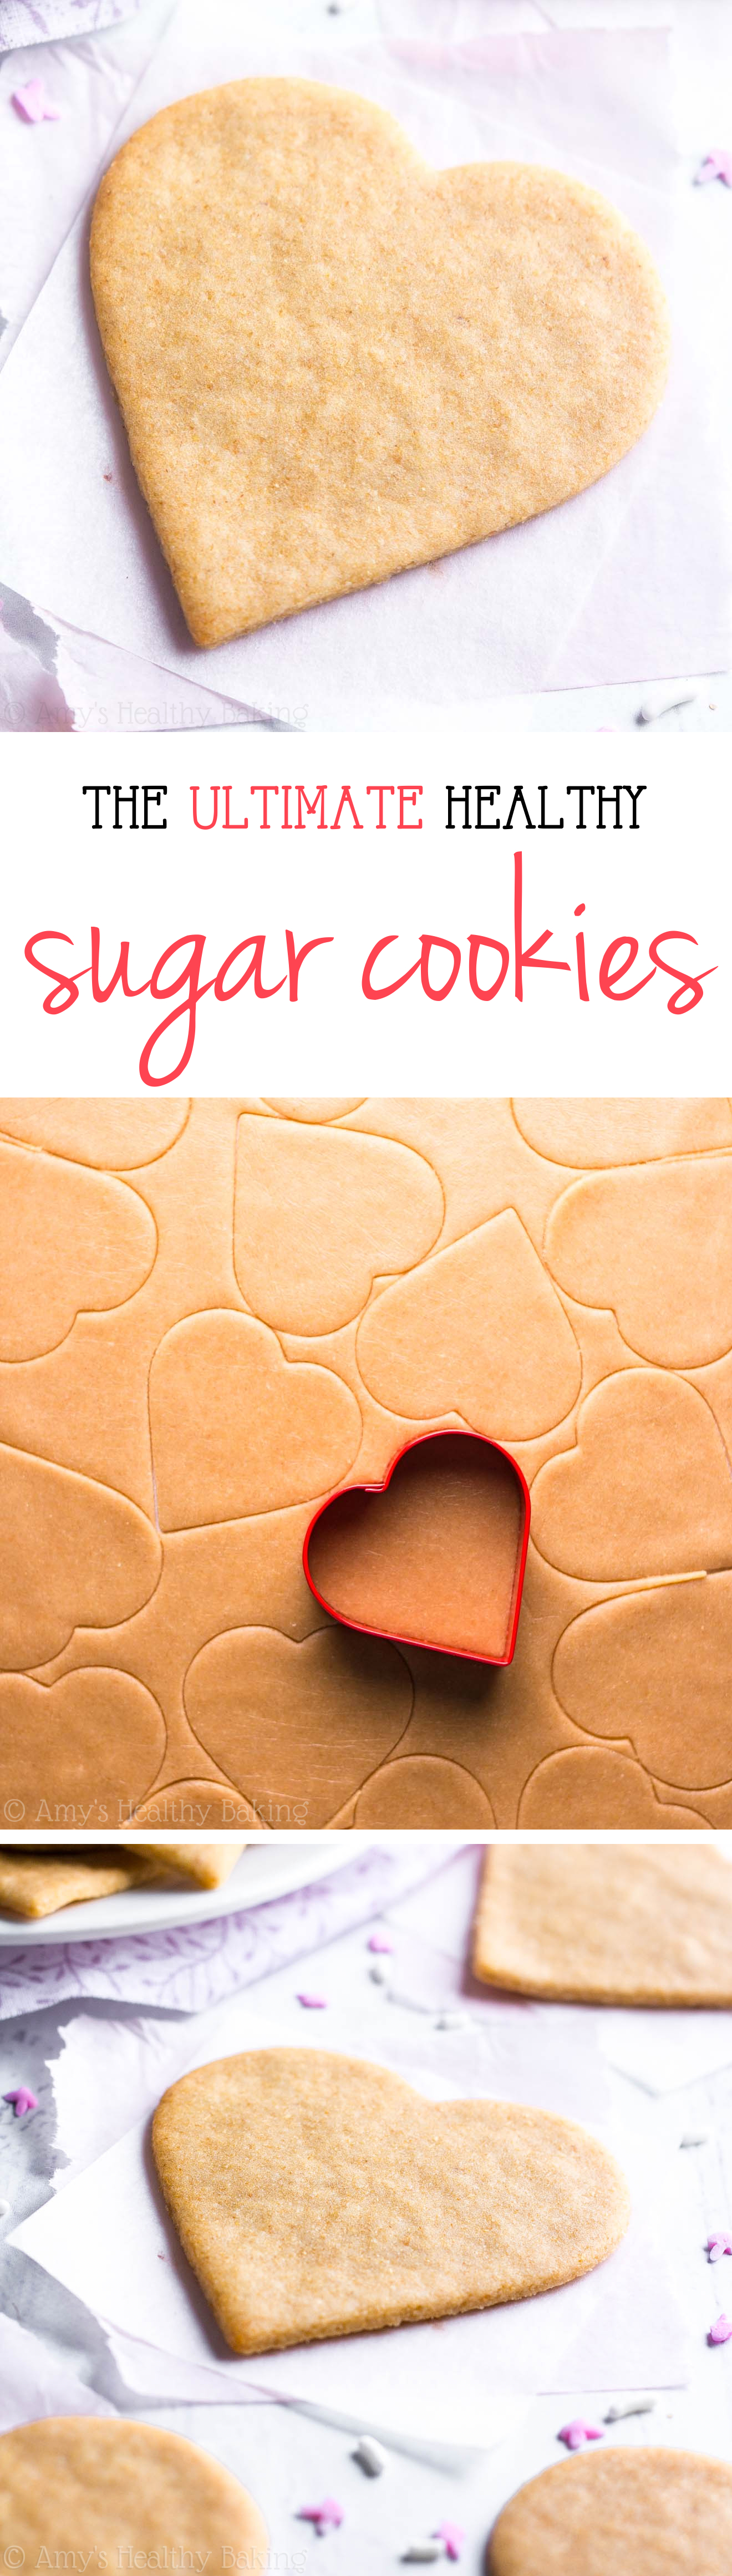 The ULTIMATE Healthy Sugar Cookies -- these skinny cookies don't taste healthy at all! They're the BEST -- soft, buttery & so easy! You'll never need another sugar cookie recipe again!